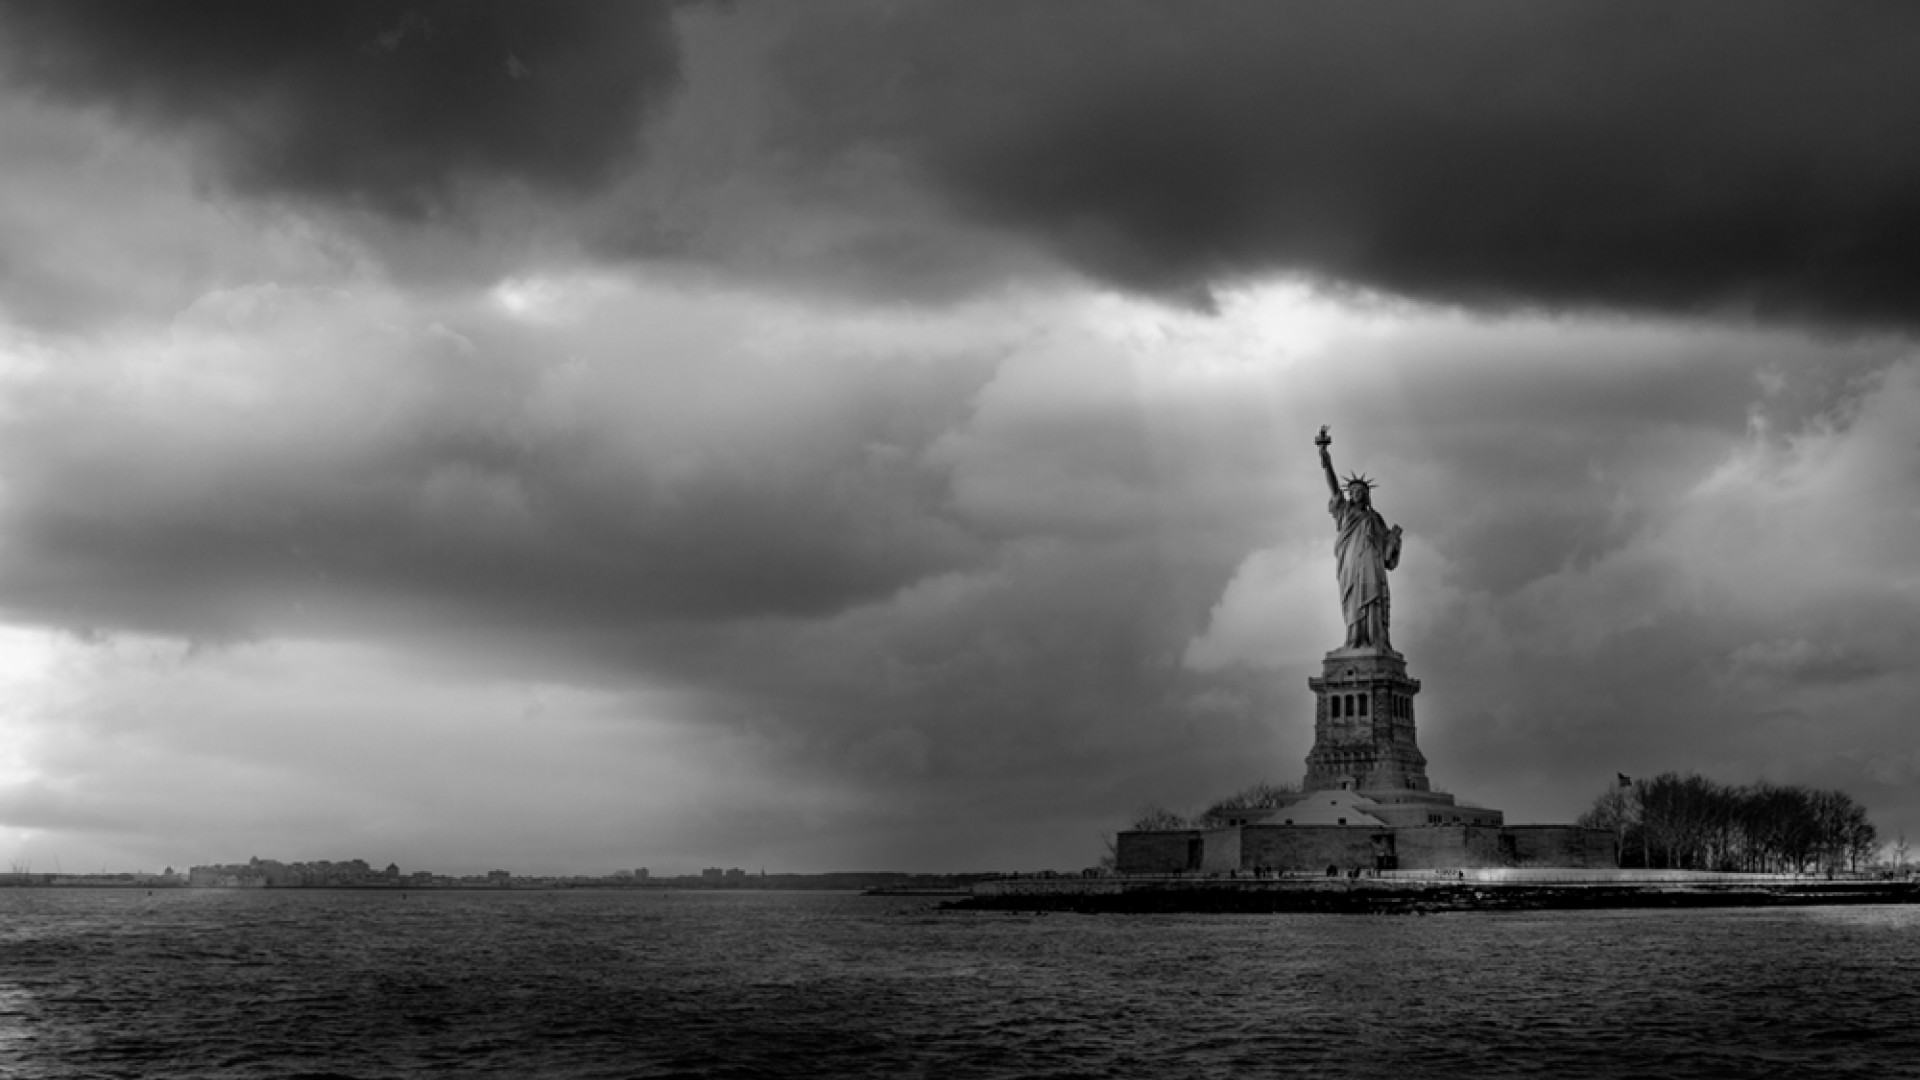 Statue of Liberty in storm clouds, New York, black and white, by Serge Ramelli